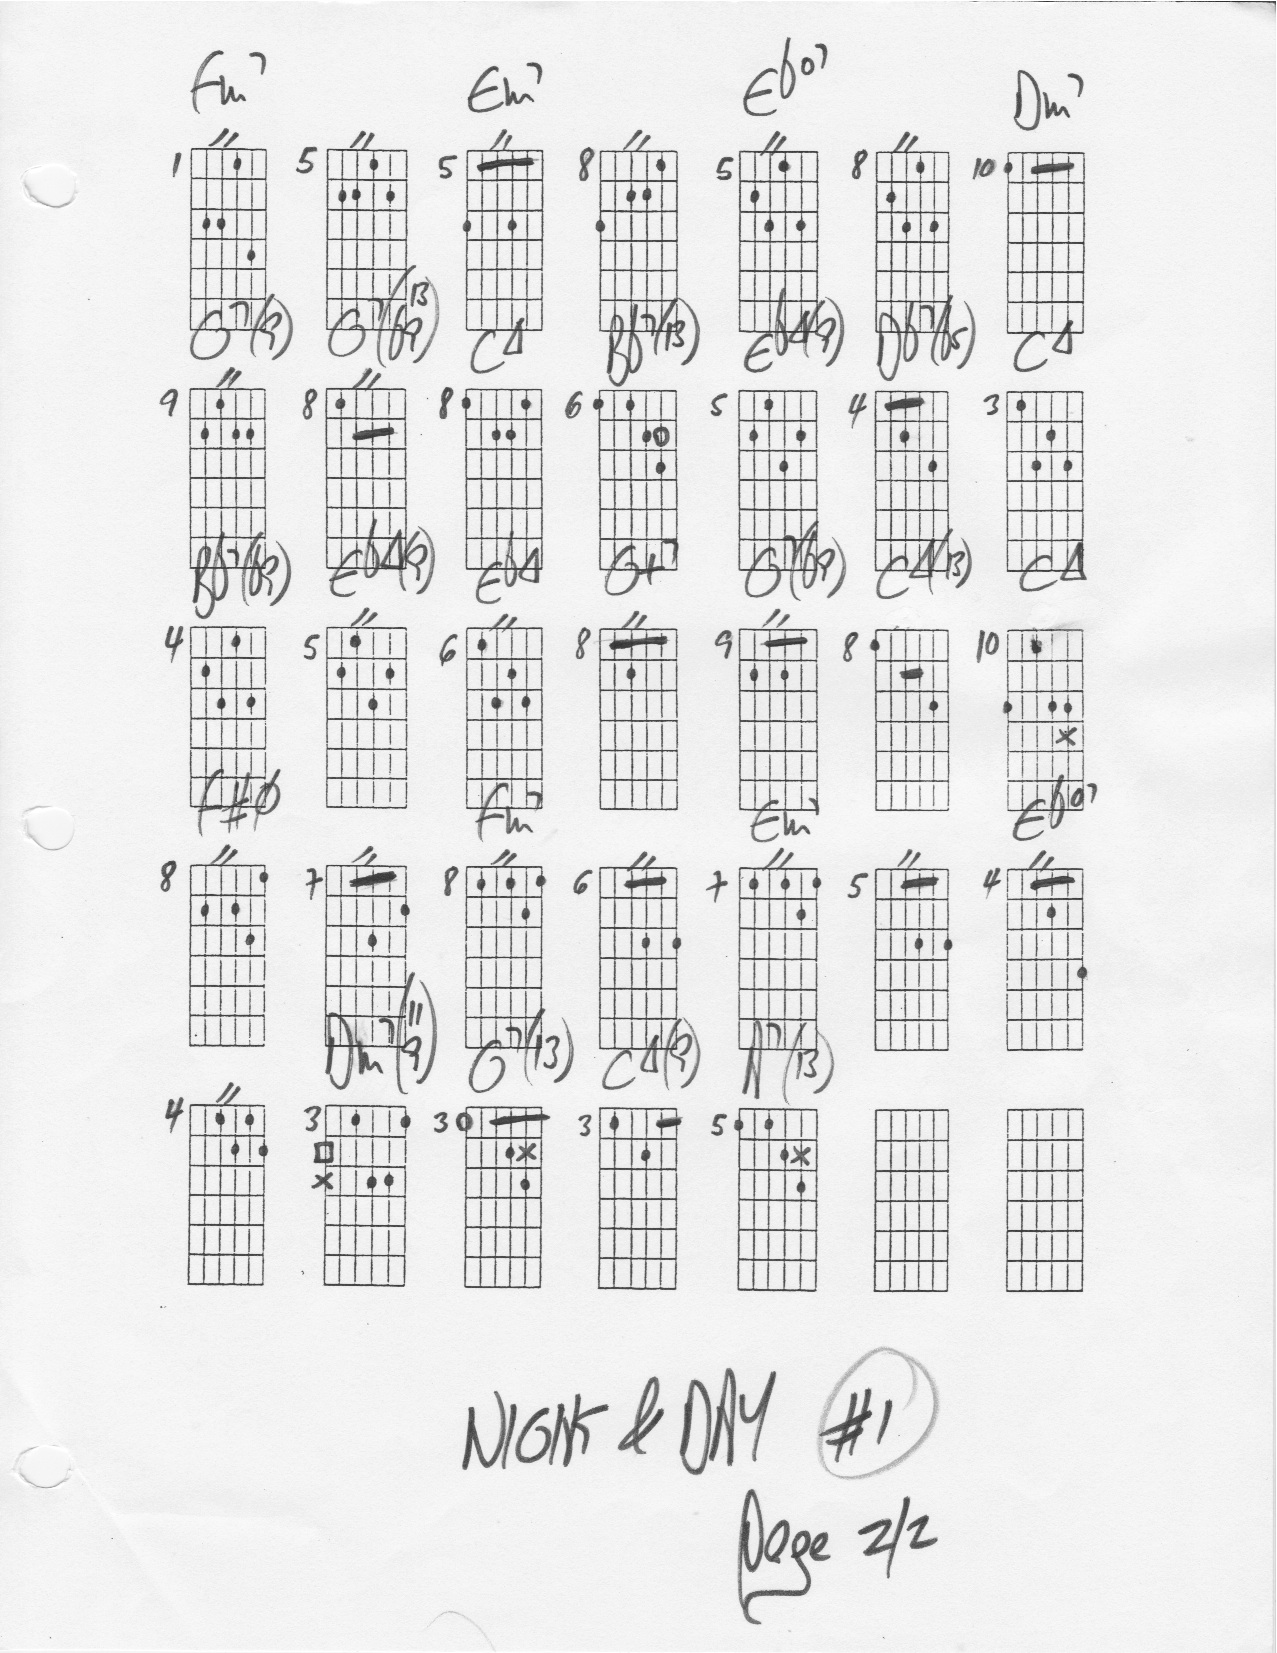 Night and day the chord changes chords chord changes jazz click here for explanations on reading the chord diagram studies hexwebz Choice Image